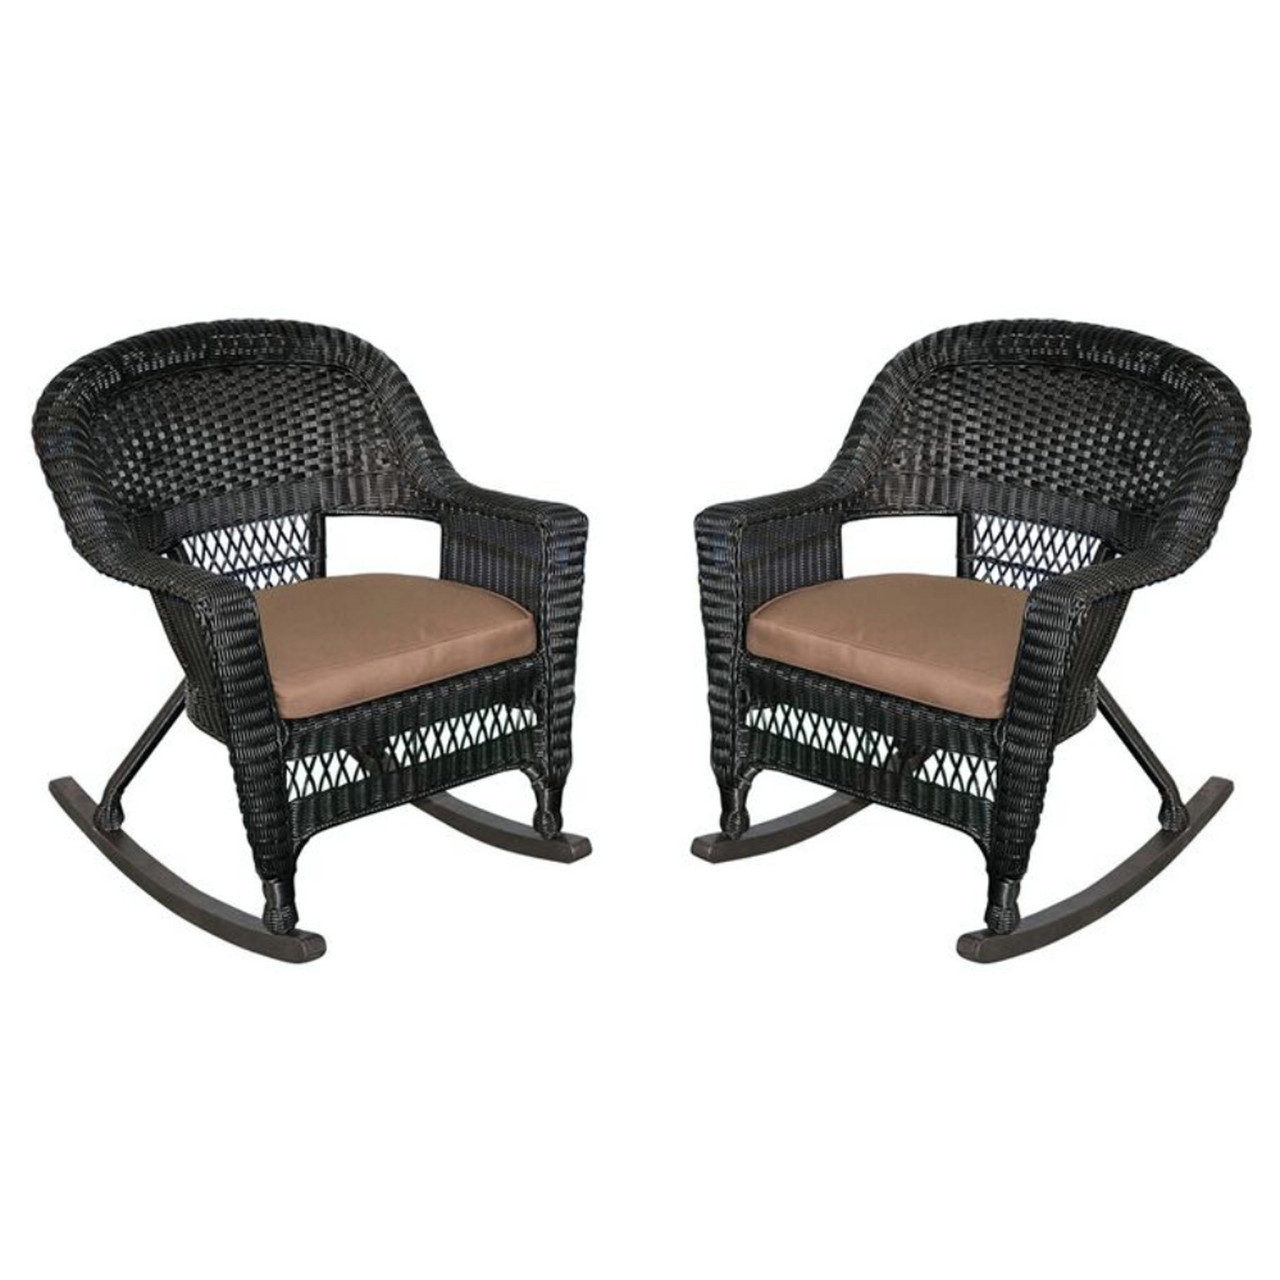 Exceptional 2 Piece Tiana Black Resin Wicker Patio Rocker Chairs Set   Brown Cushions    31556415